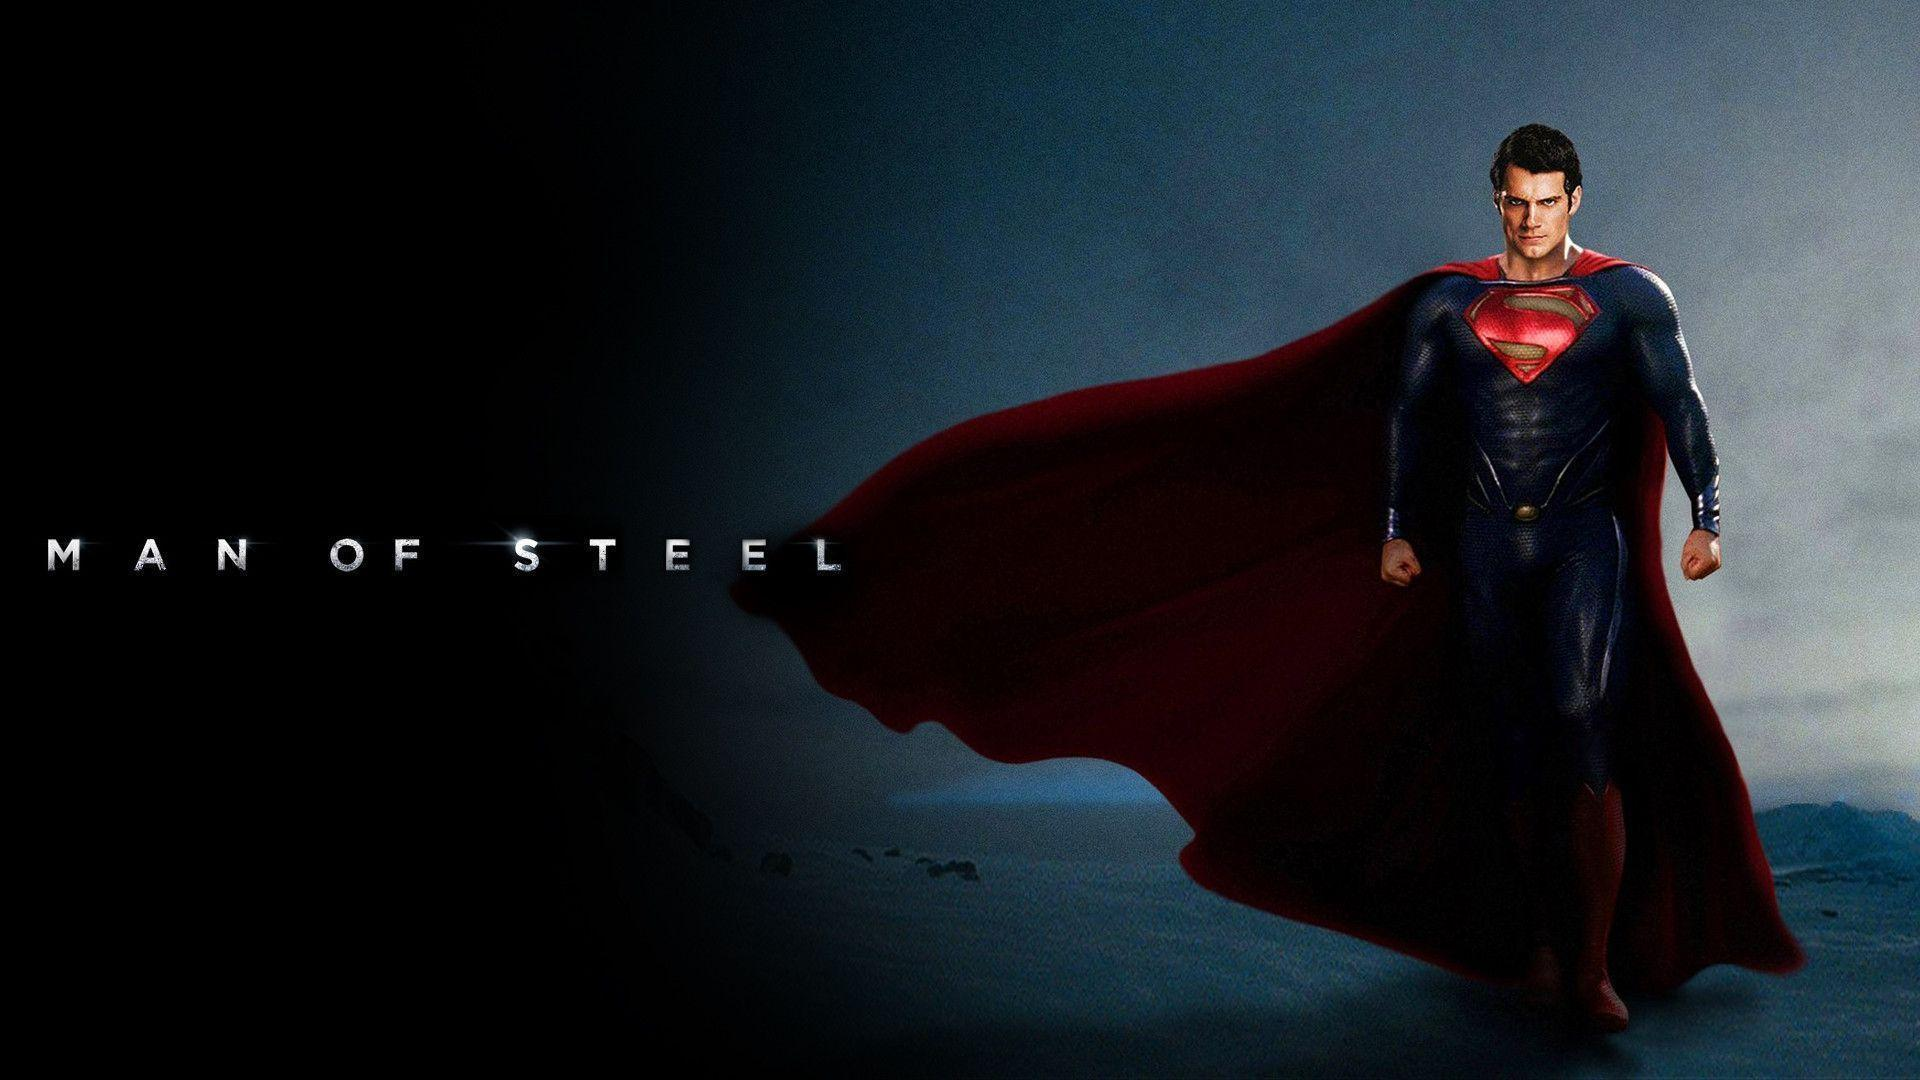 Superman Man Of Steel Backgrounds 1920x1080